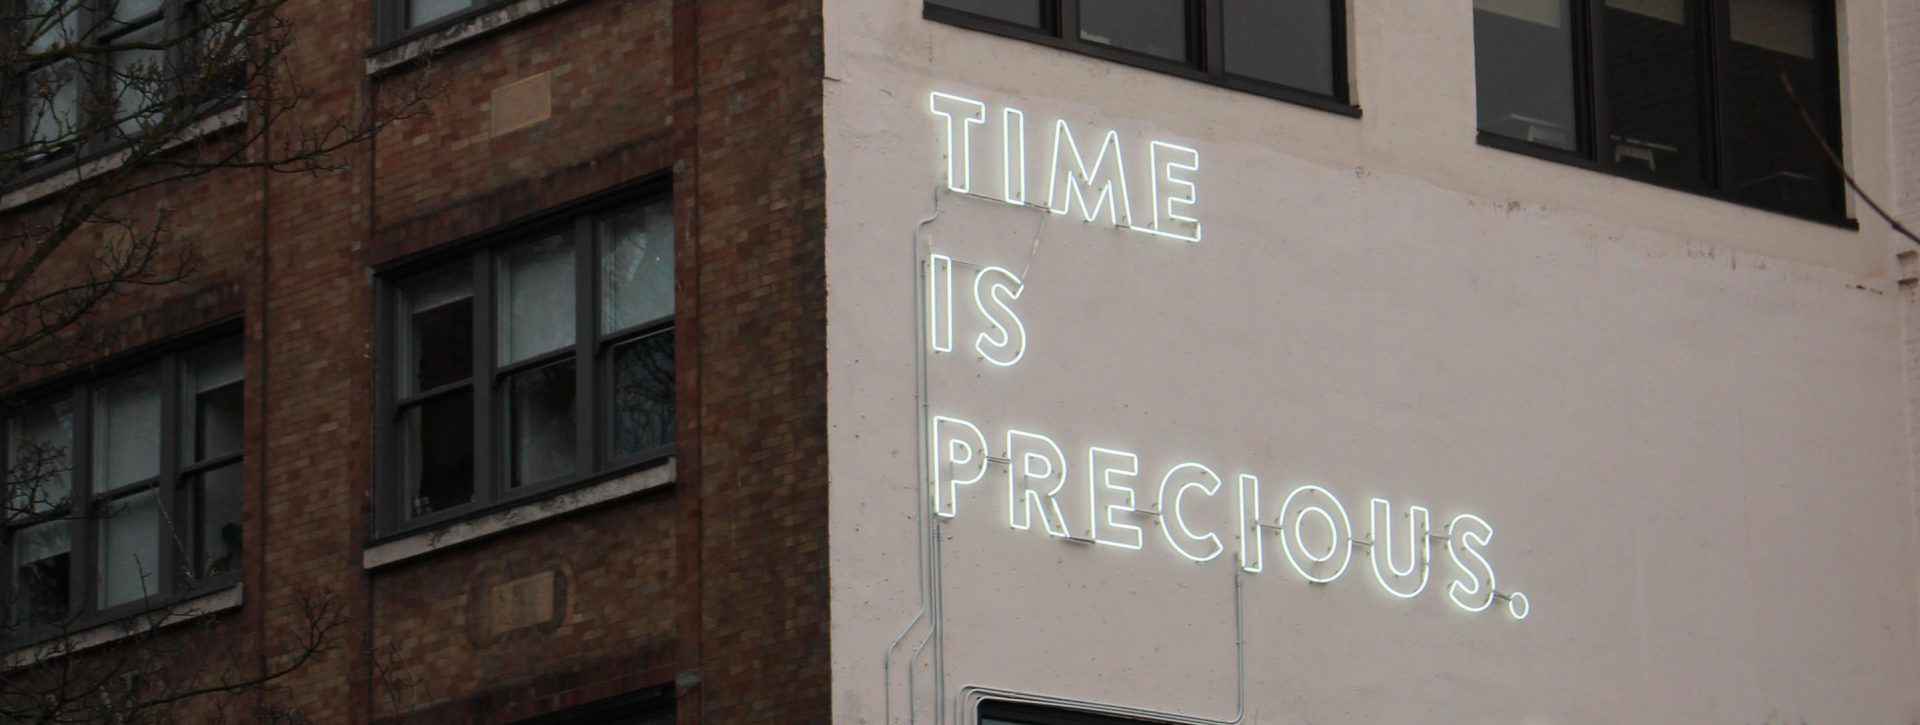 """Time is Precious"" sign in Yaletown, Vancouver"